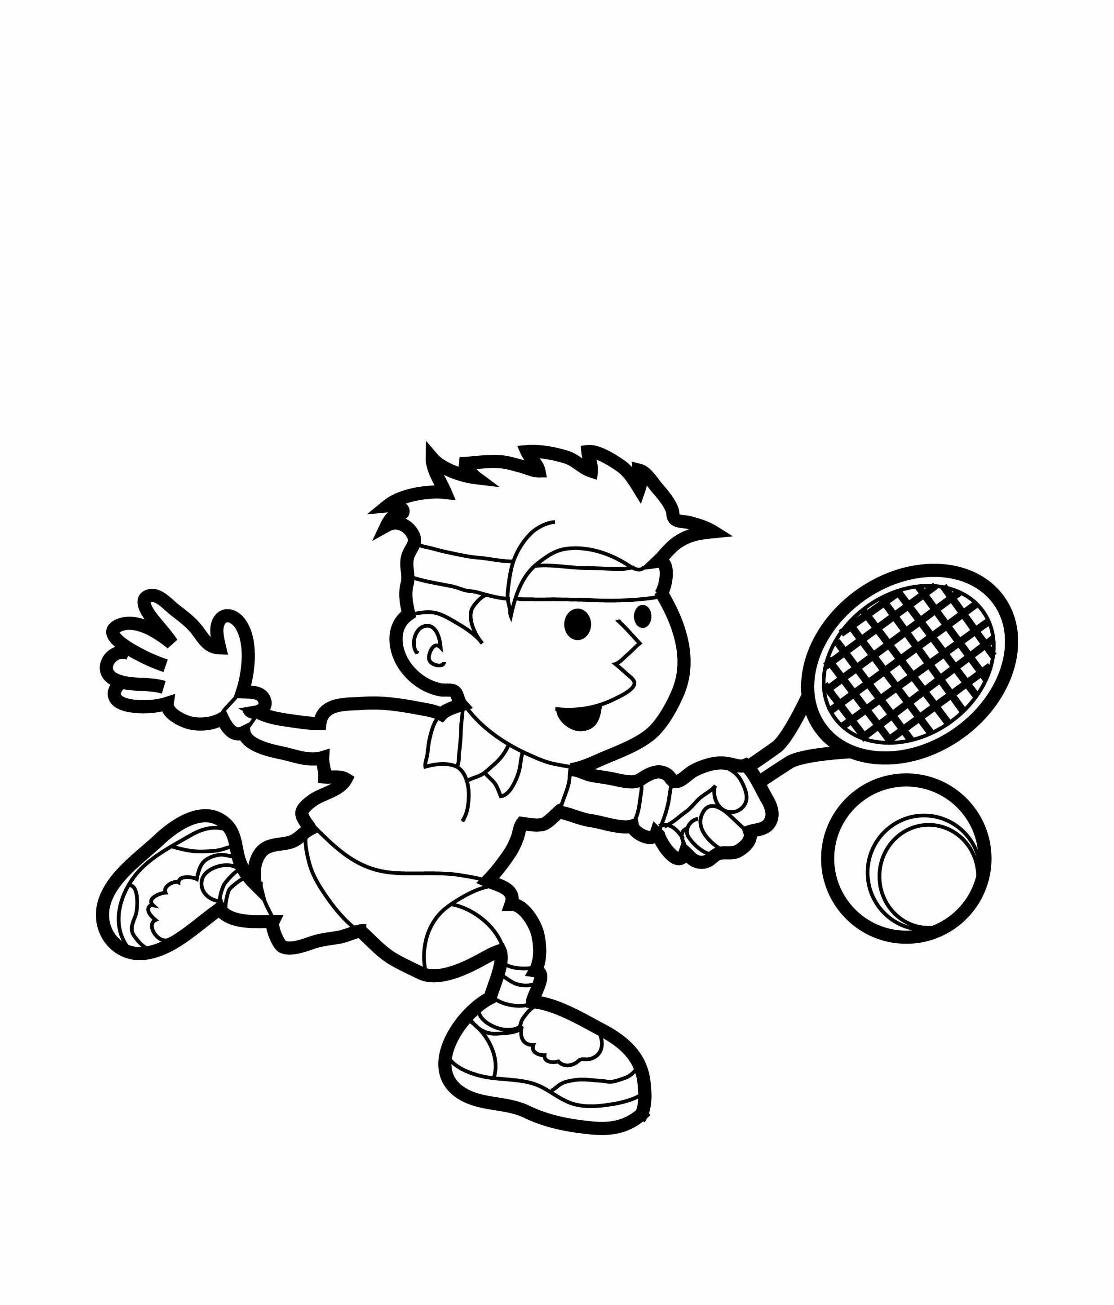 tennis coloring pages top 25 free printable tennis coloring pages online tennis pages coloring